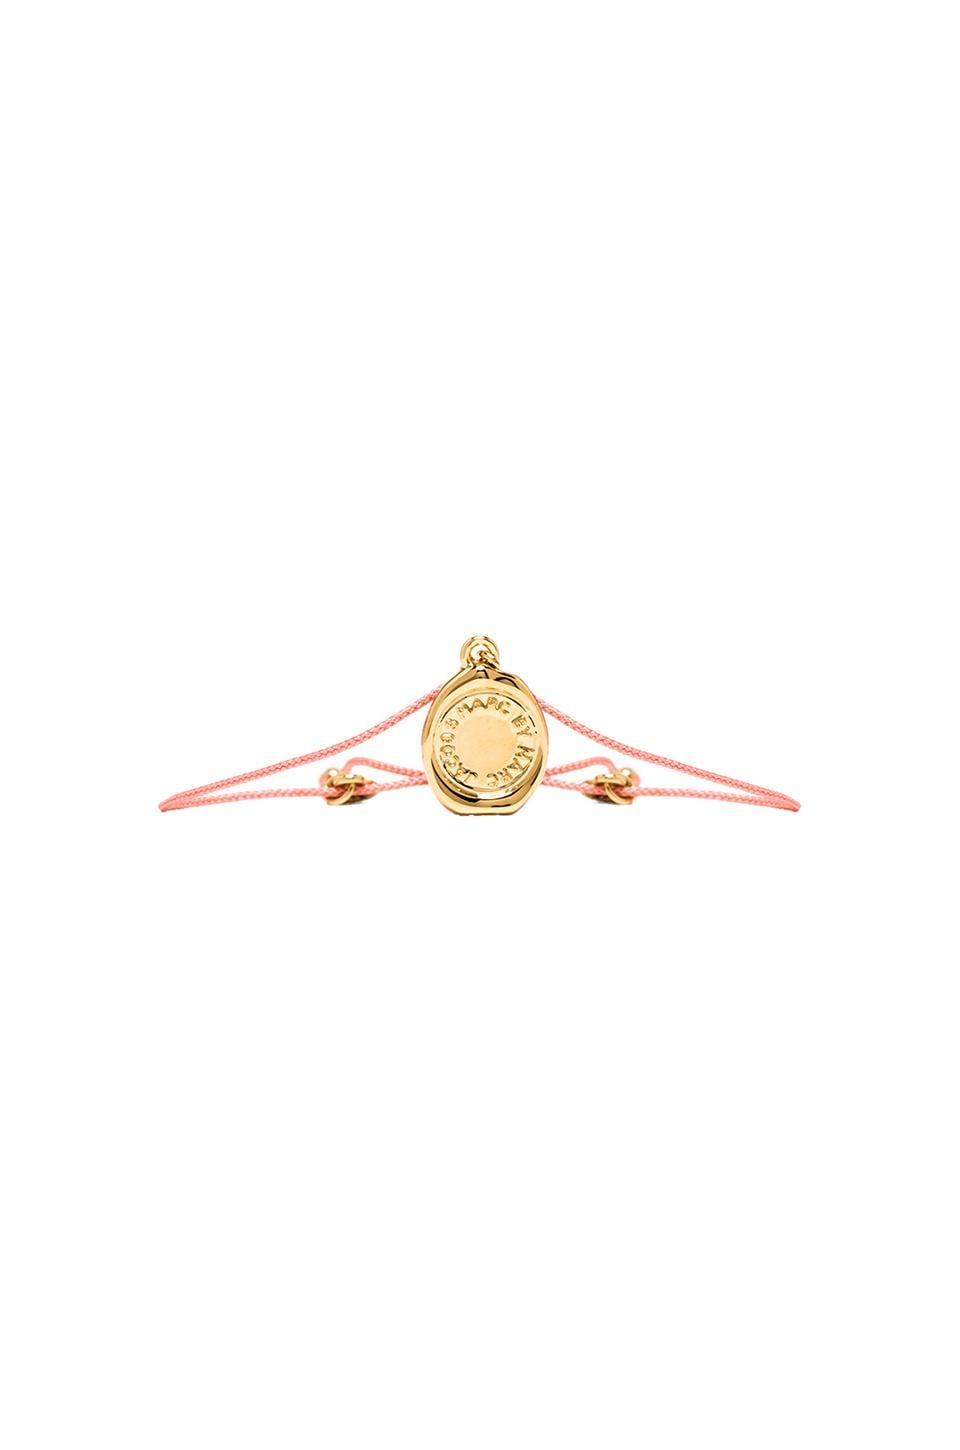 Marc by Marc Jacobs Grab & Go Stamped Friendship Bracelet in Fluoro Coral & Oro